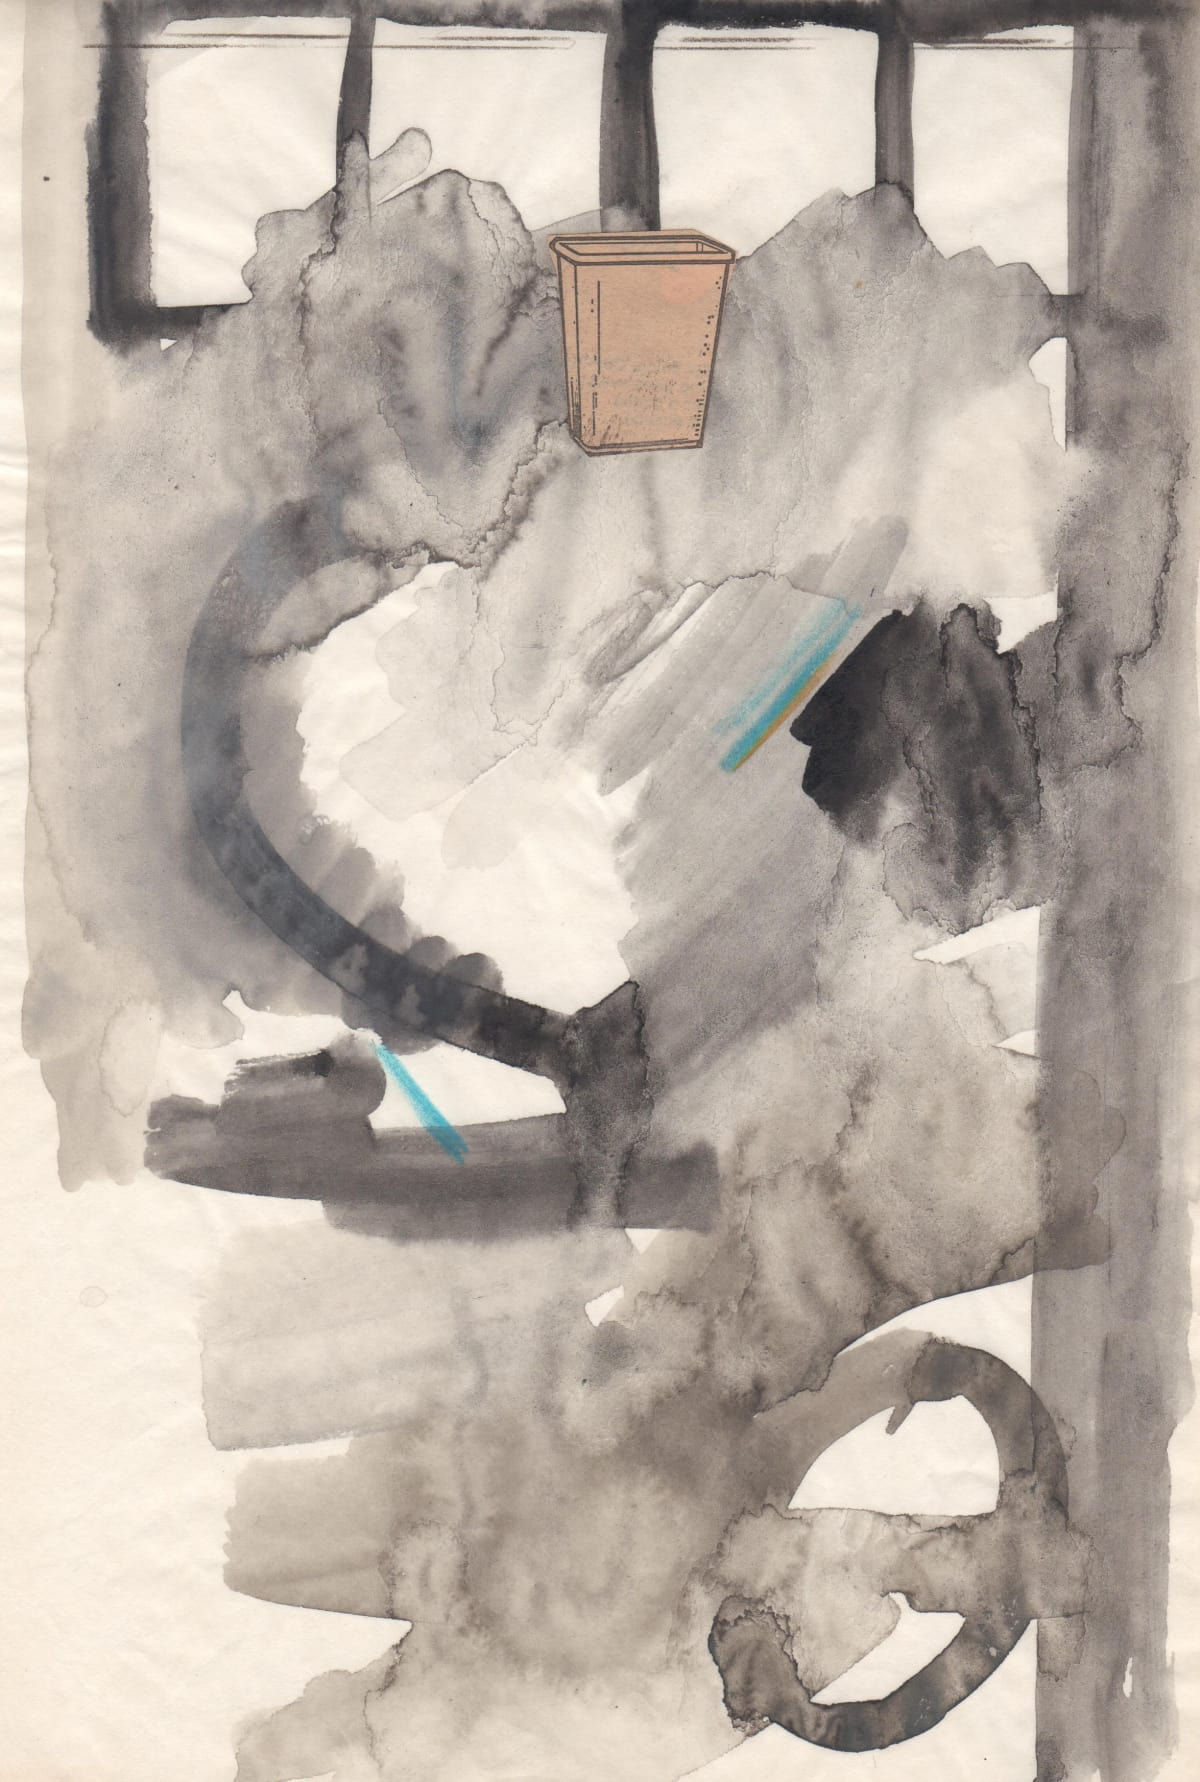 Pat O'Neill, Sketches on Manifold Paper 10, 1980